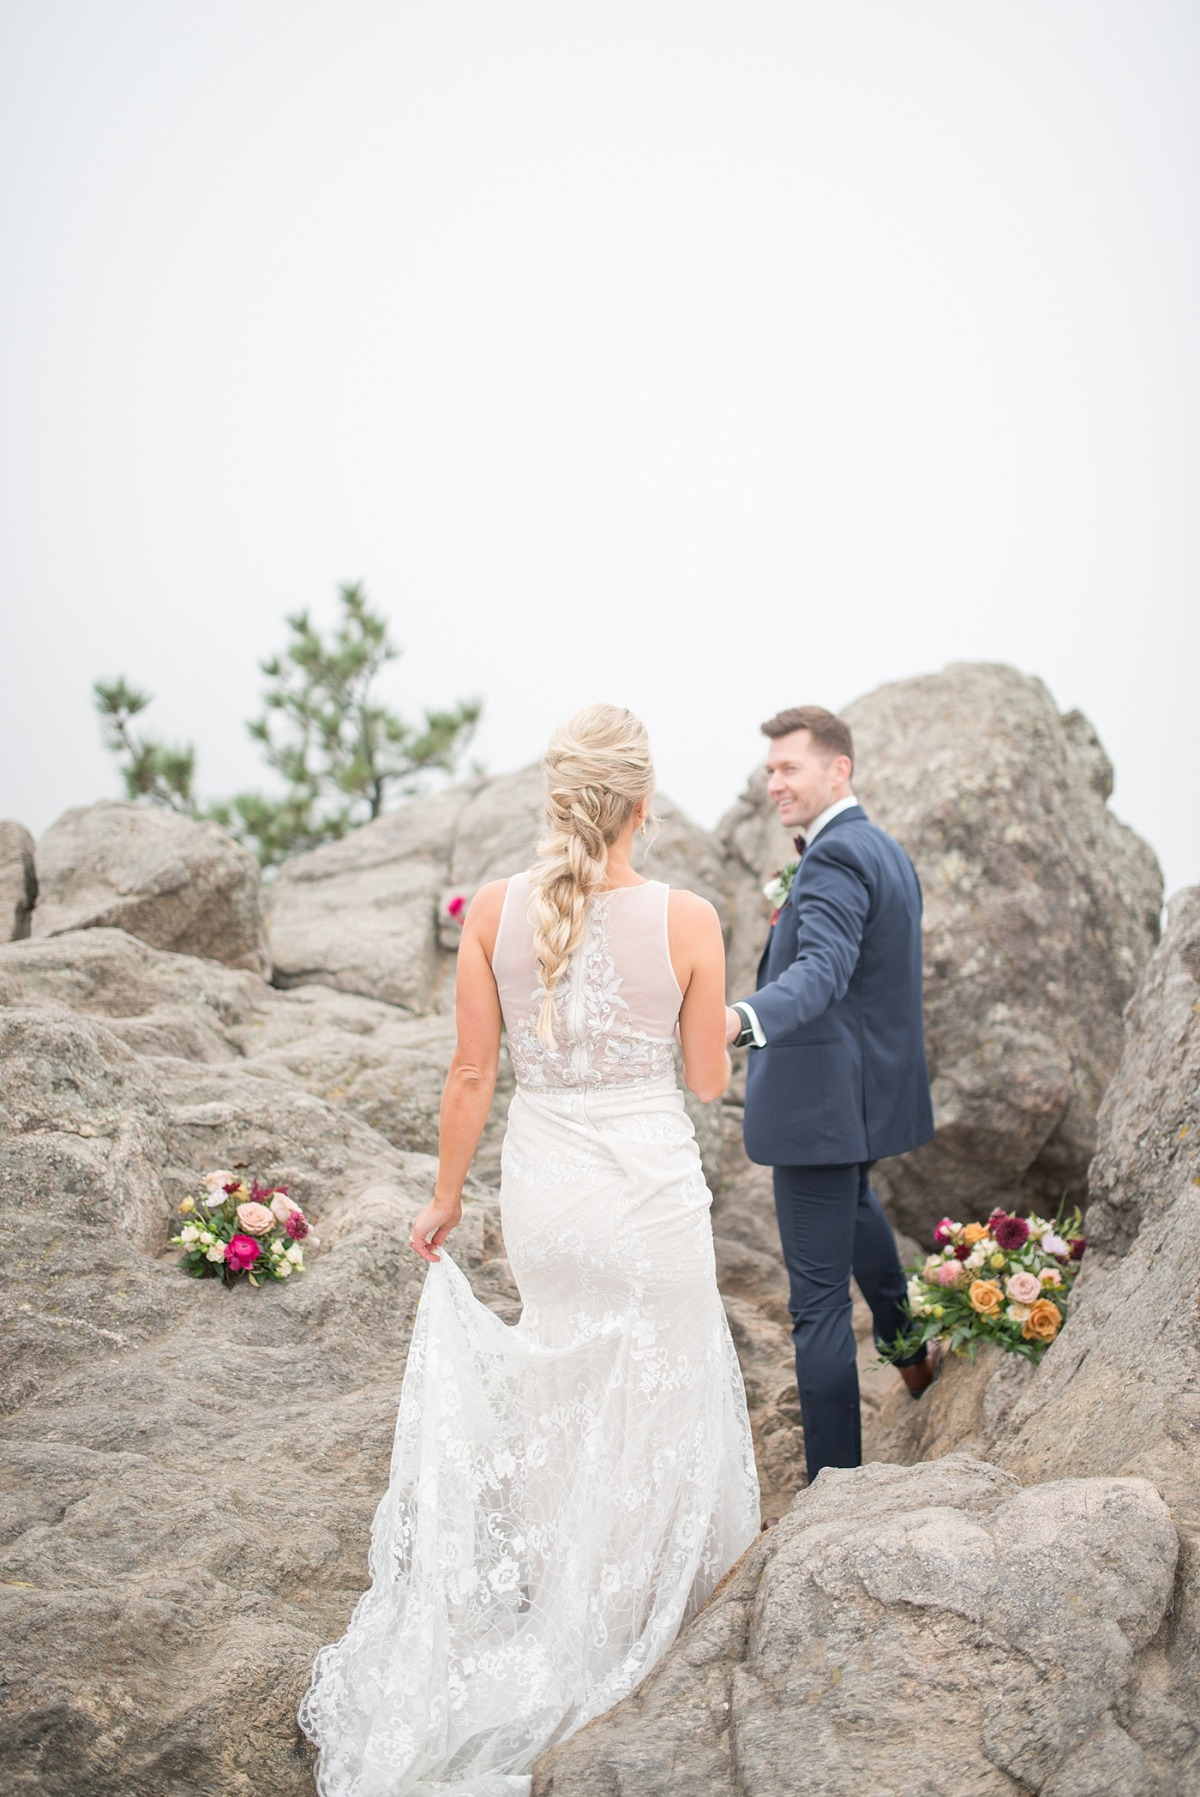 Get eloped in the mountains